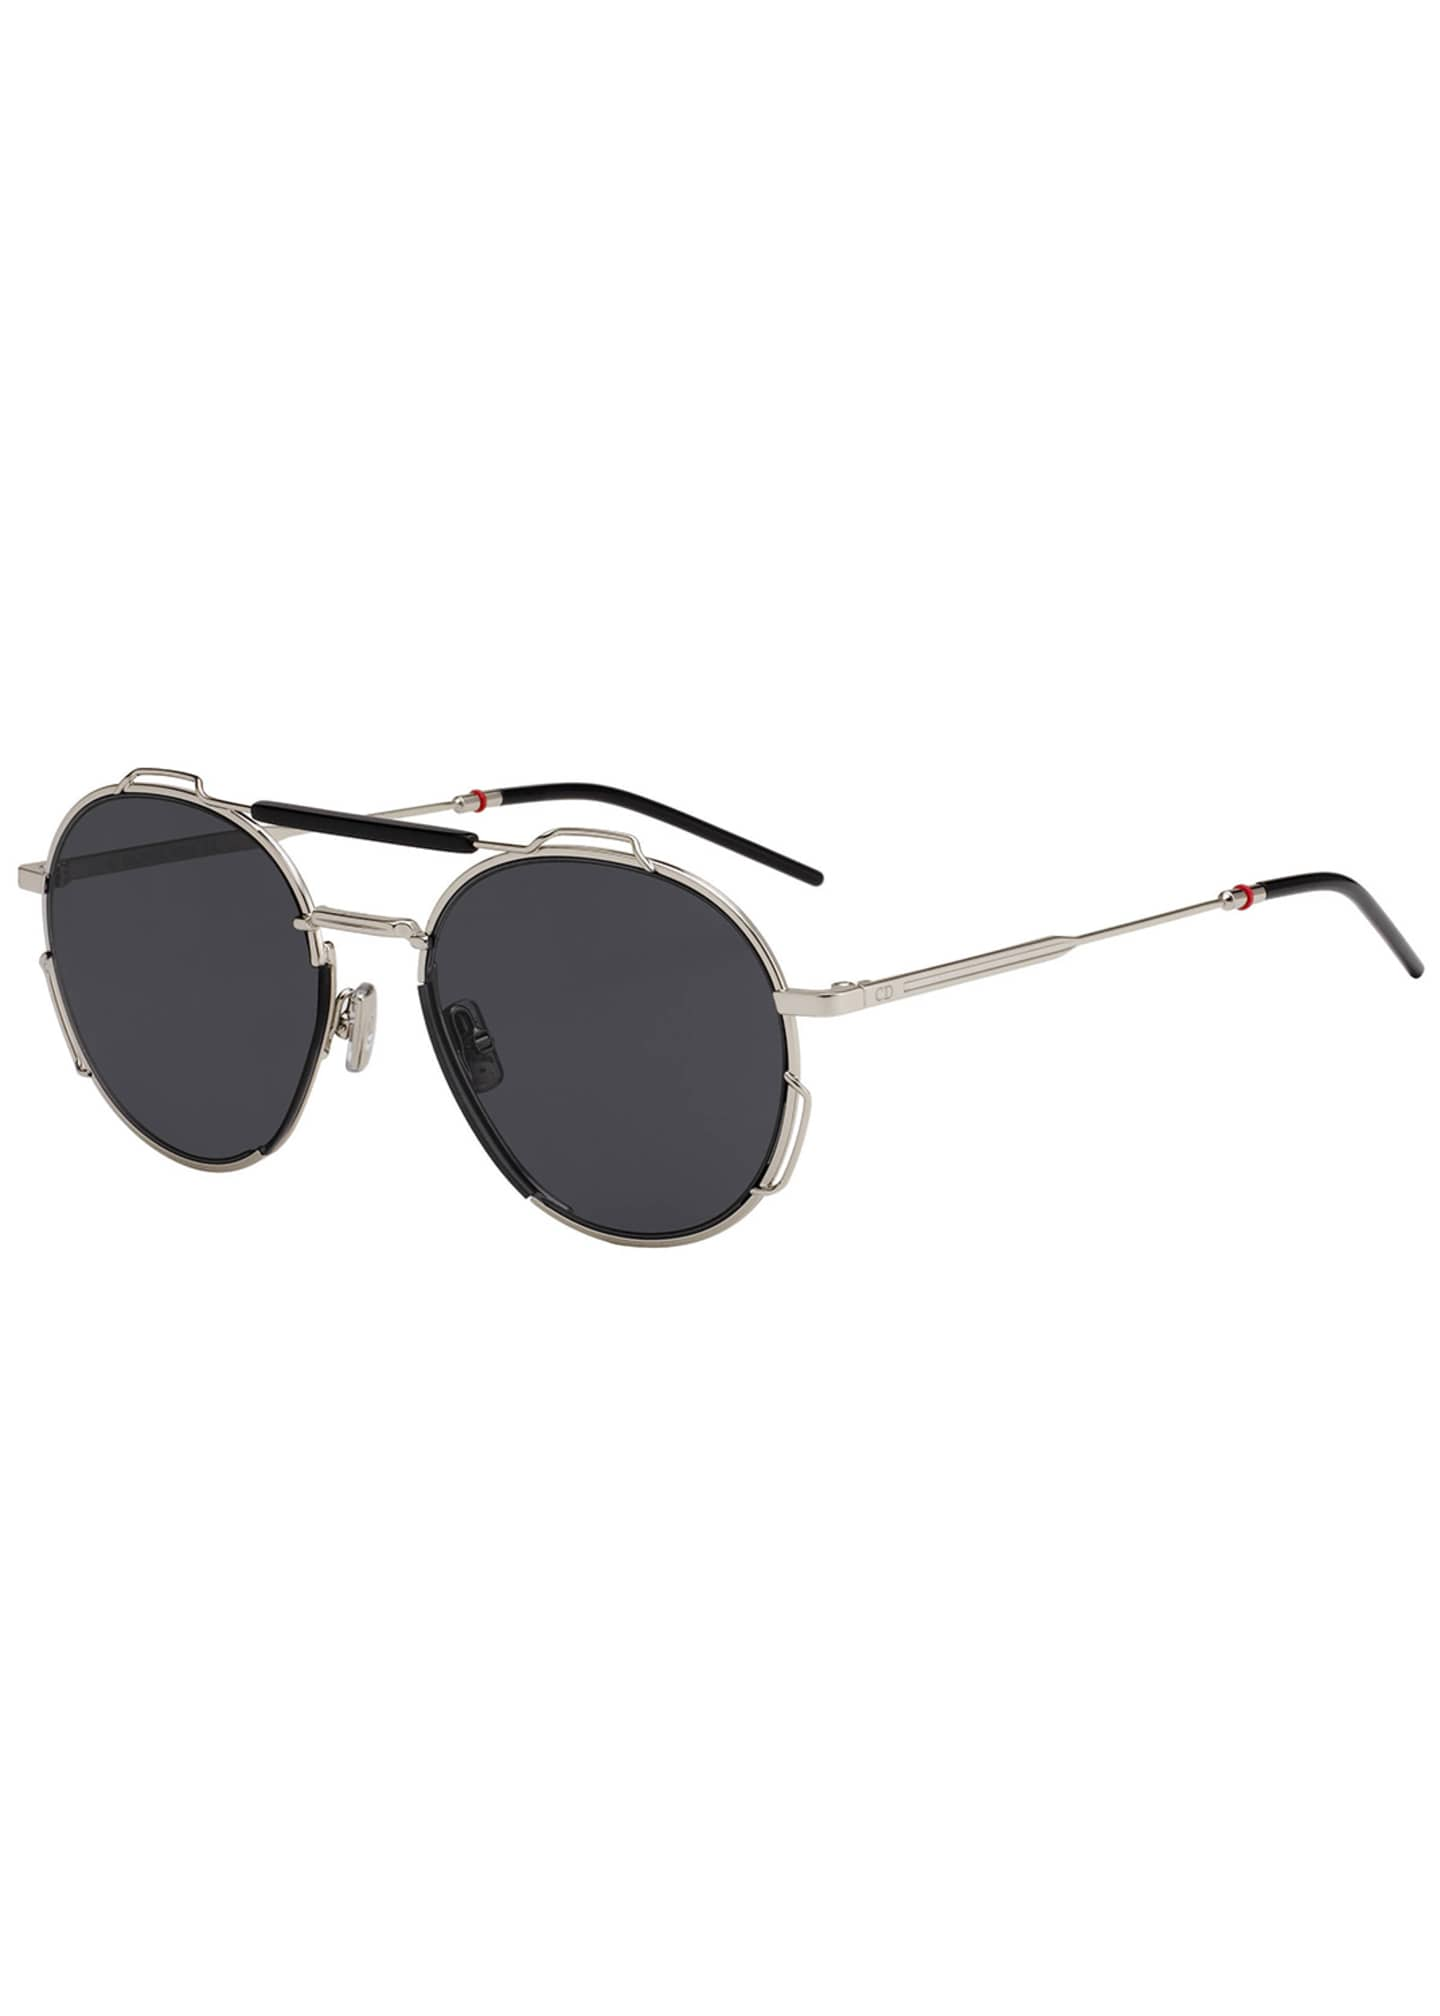 Image 1 of 1: Men's Round Lightweight Sunglasses w/ Wire Accents